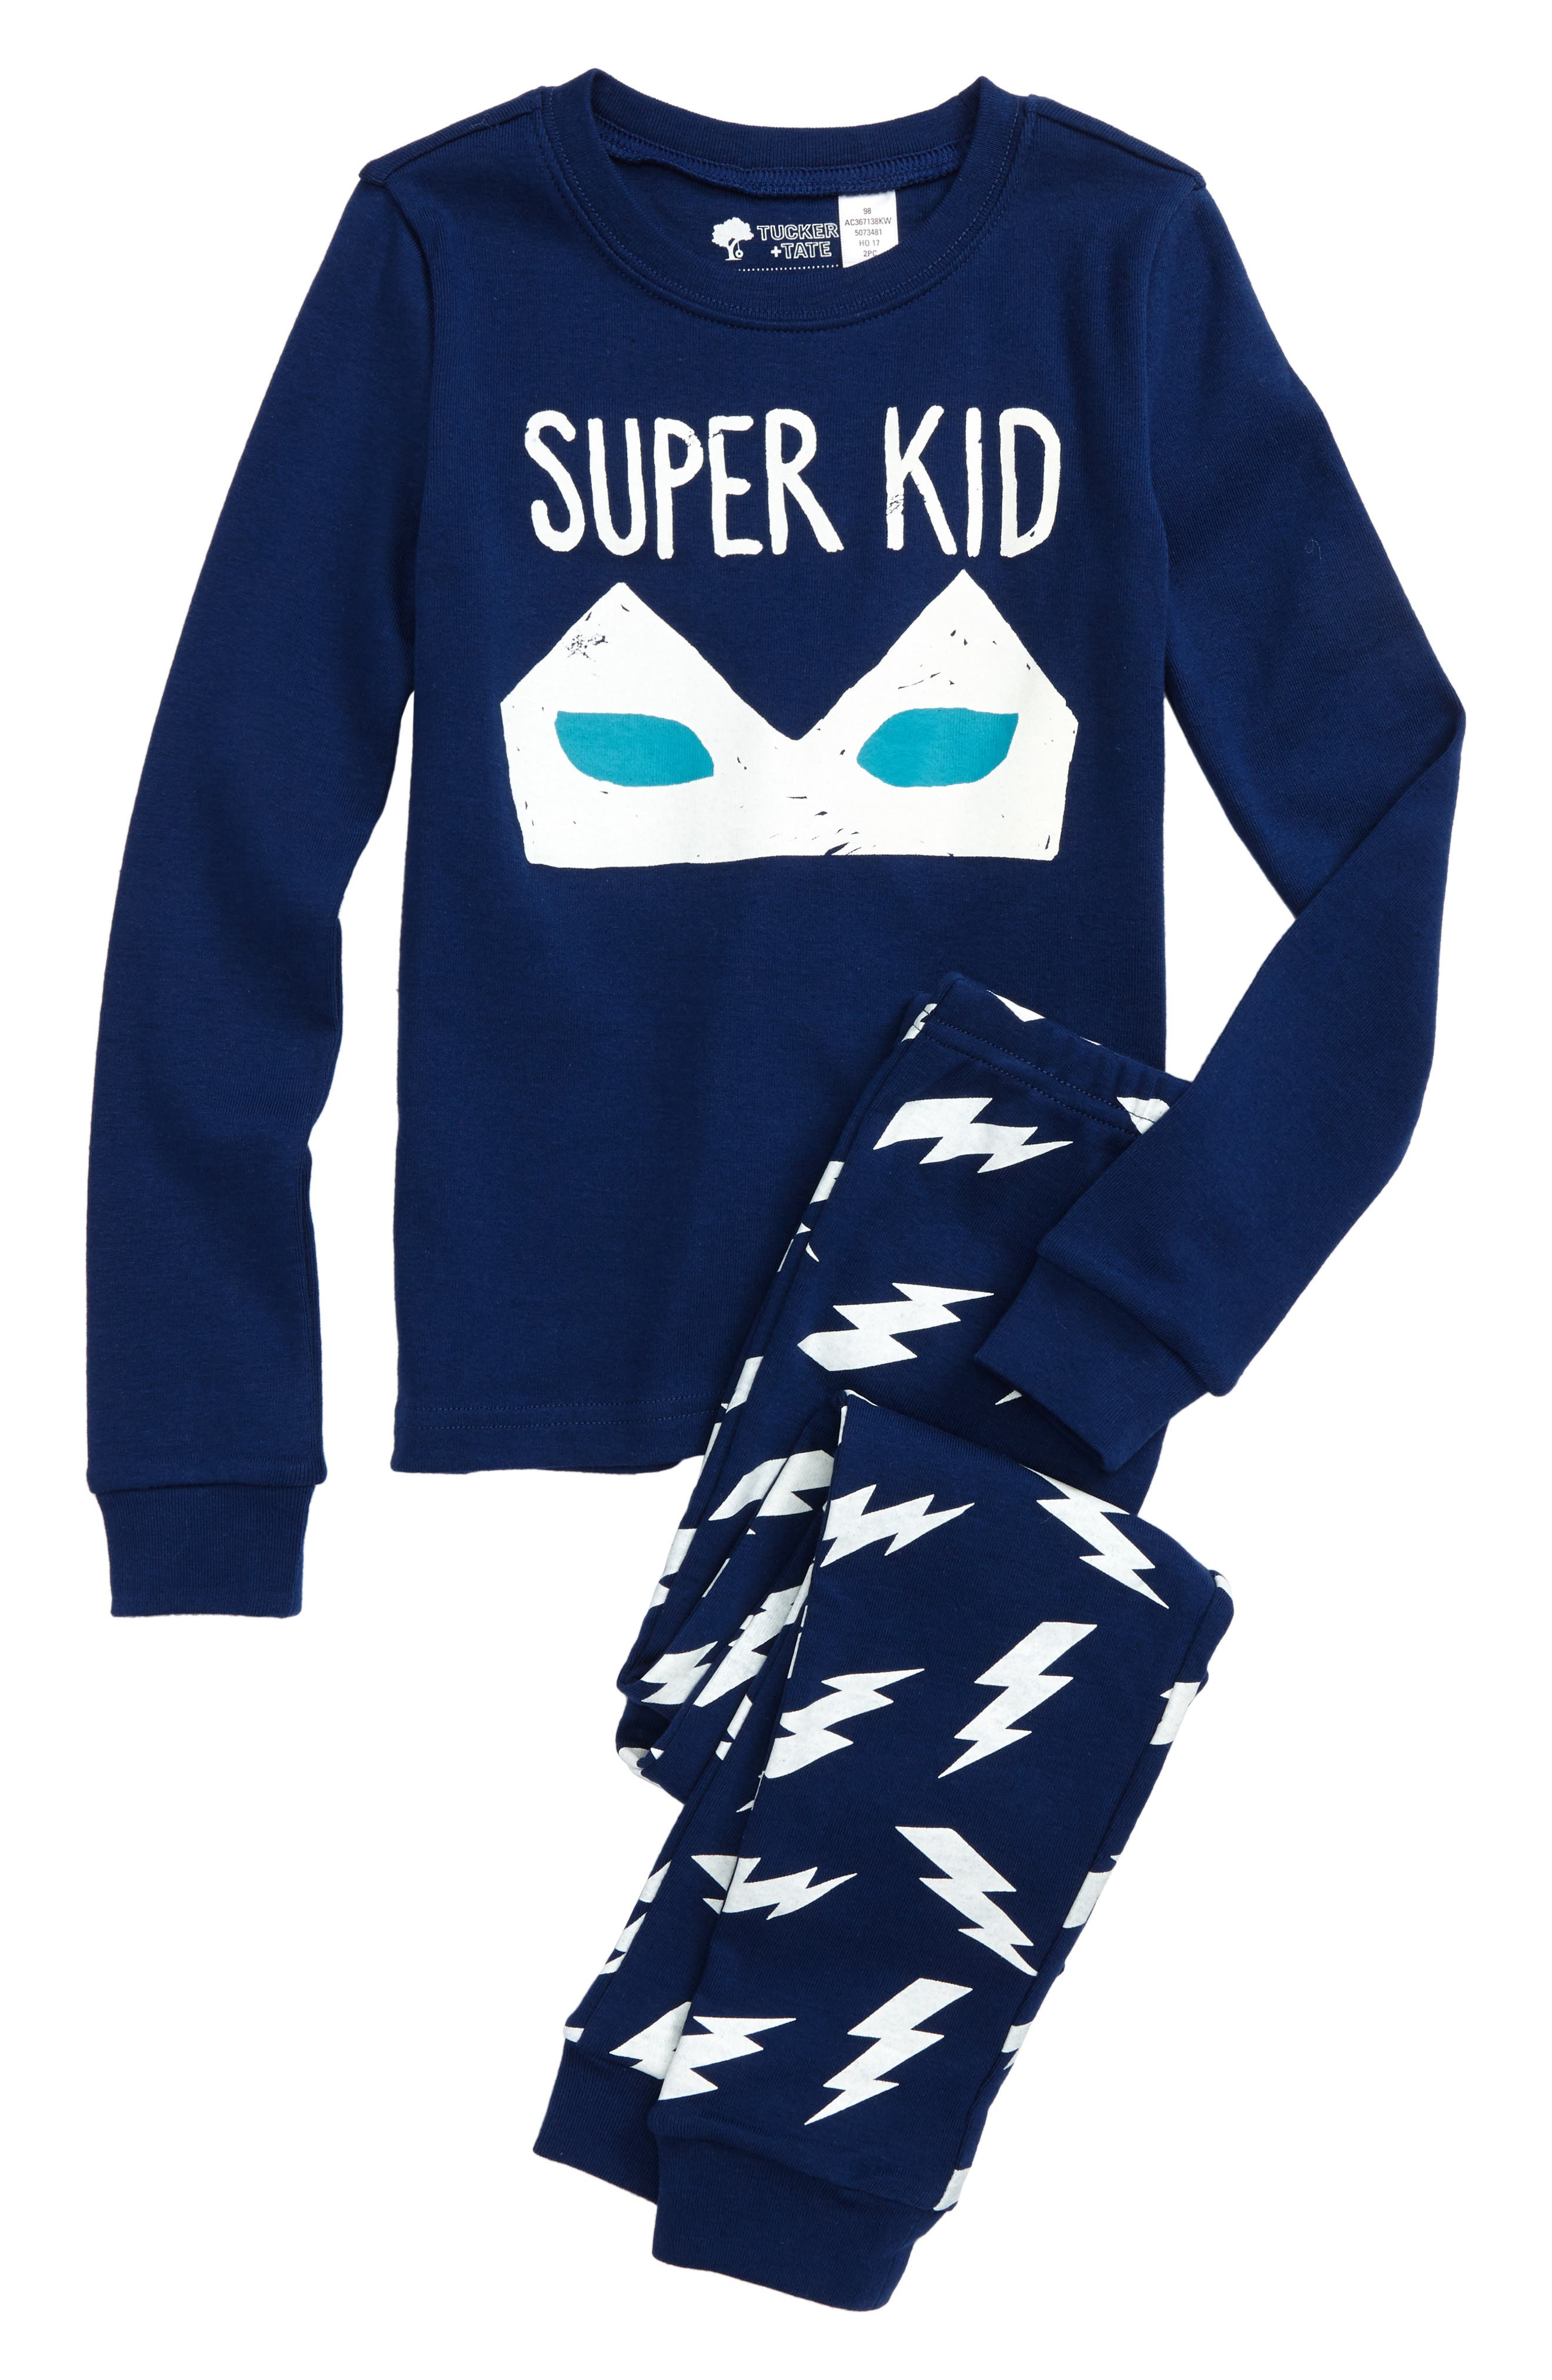 Super Kid Glow in the Dark Fitted Two-Piece Pajamas,                         Main,                         color, Blue Estate Super Kid